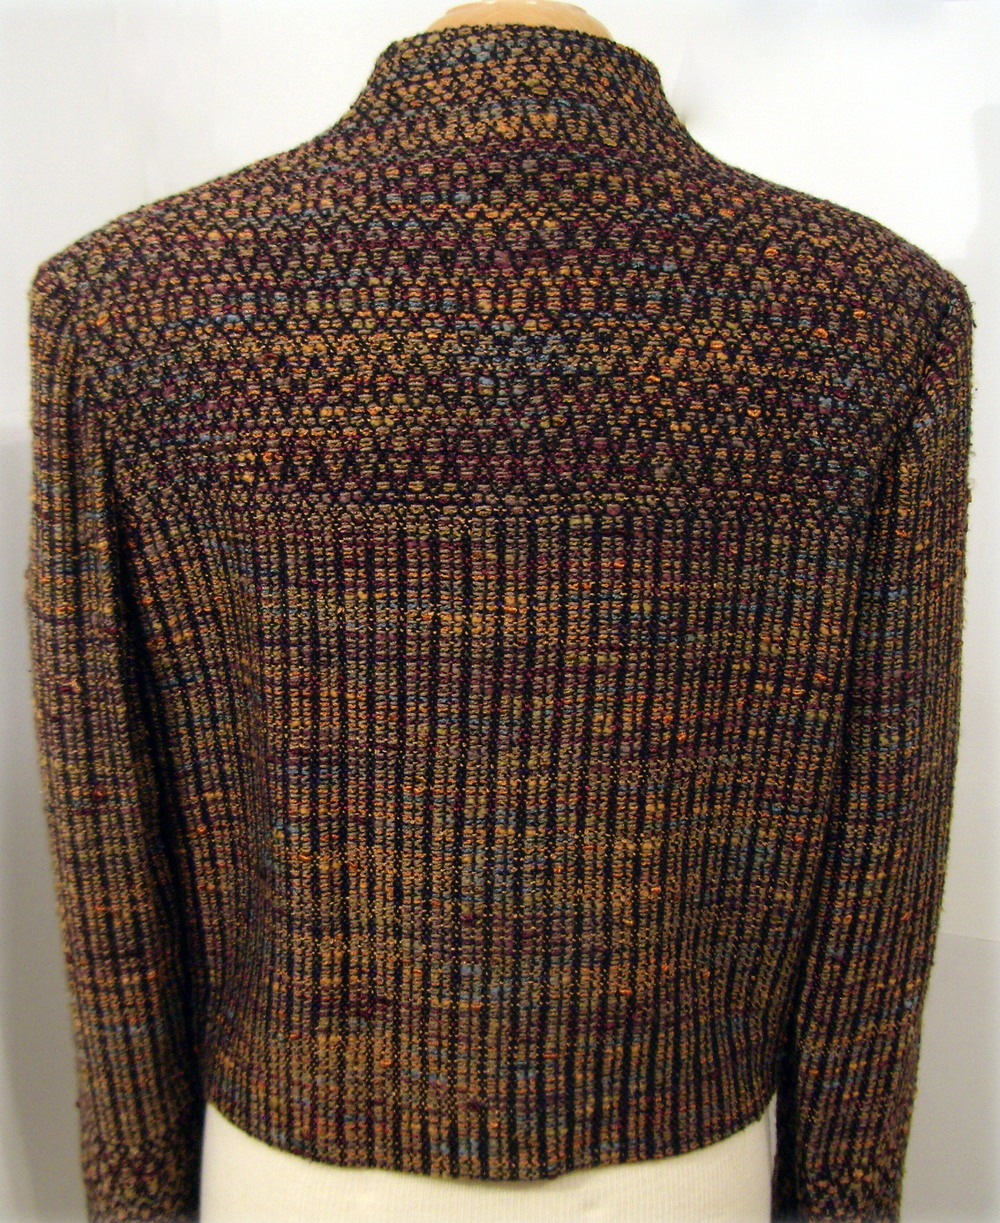 Hand Woven Jacket, Kathleen Weir-West, Fiber Art 7.JPG